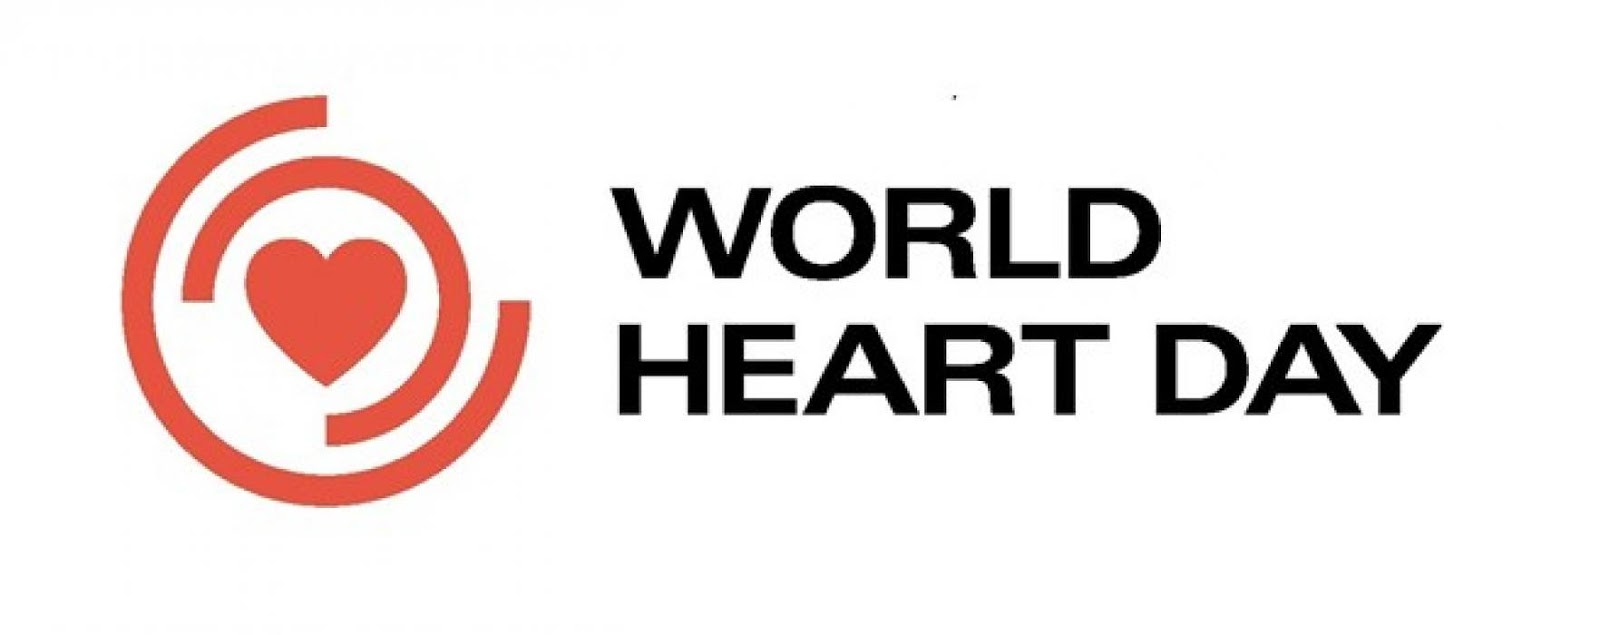 World Heart Day Wishes for Whatsapp